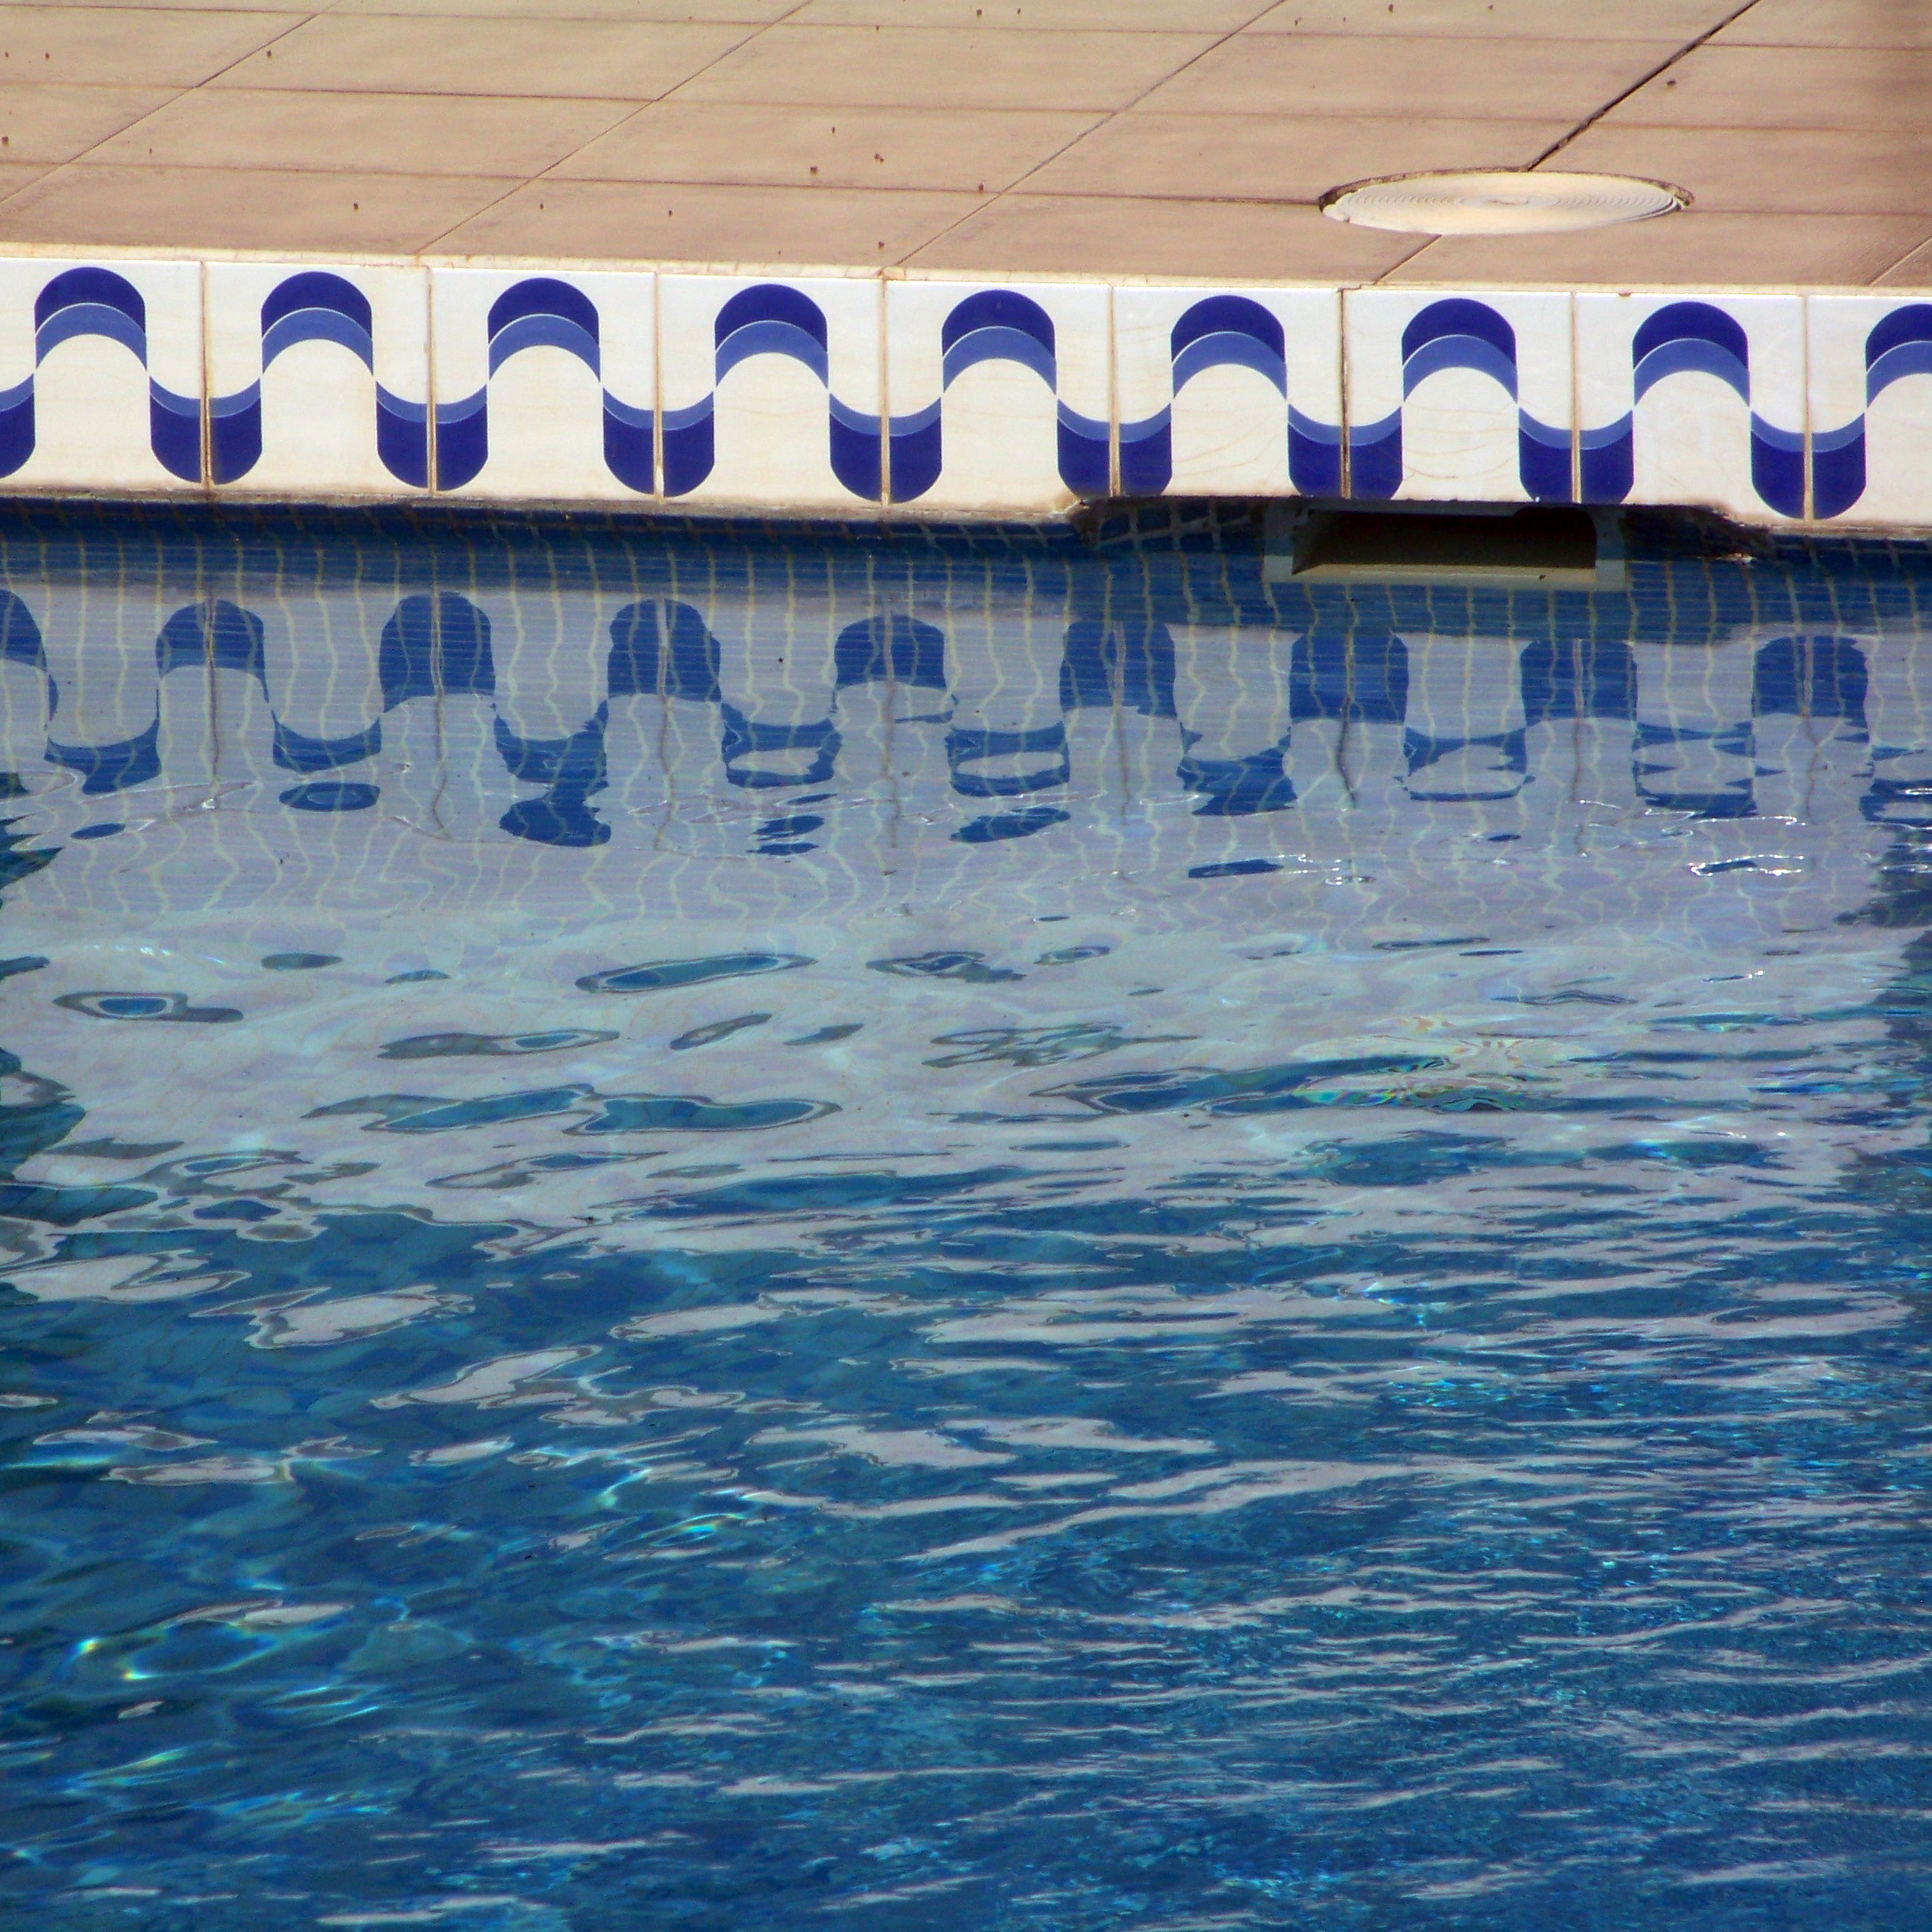 Swimming pool, Swimming, Water, Ripples, Pool, HQ Photo